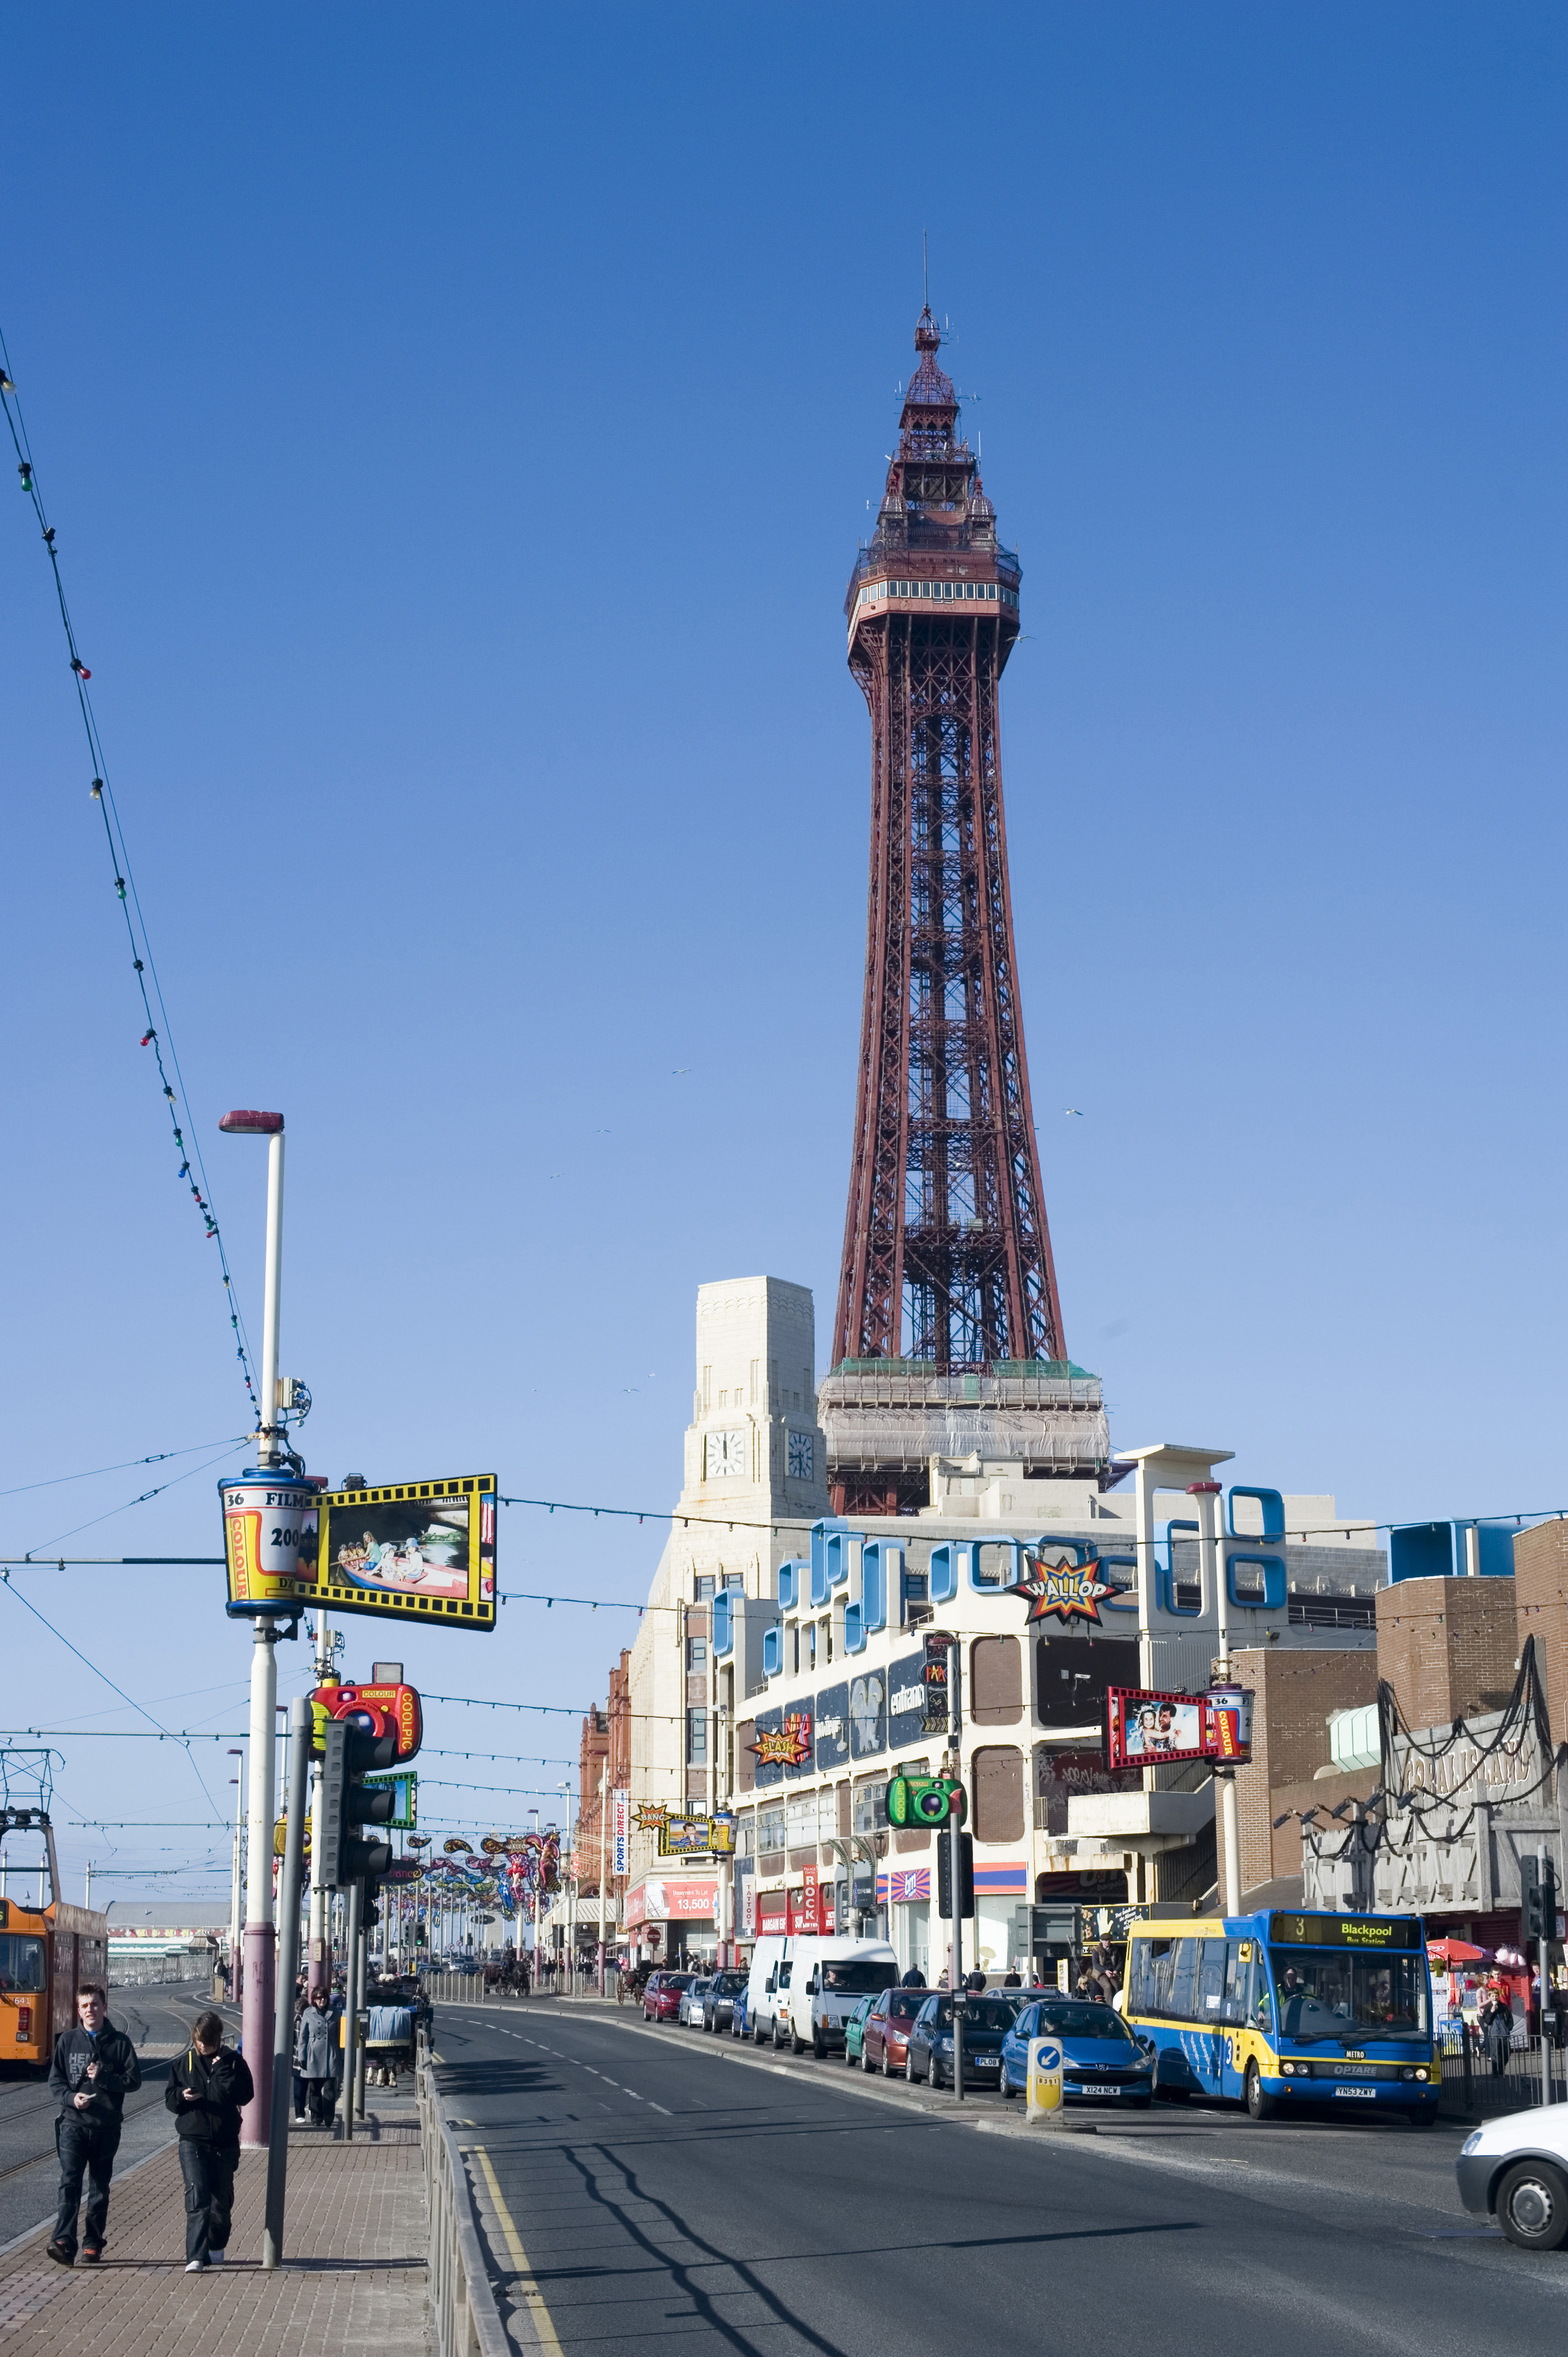 Free Stock Photo 7682 Blackpool Tower And Promenade Freeimageslive